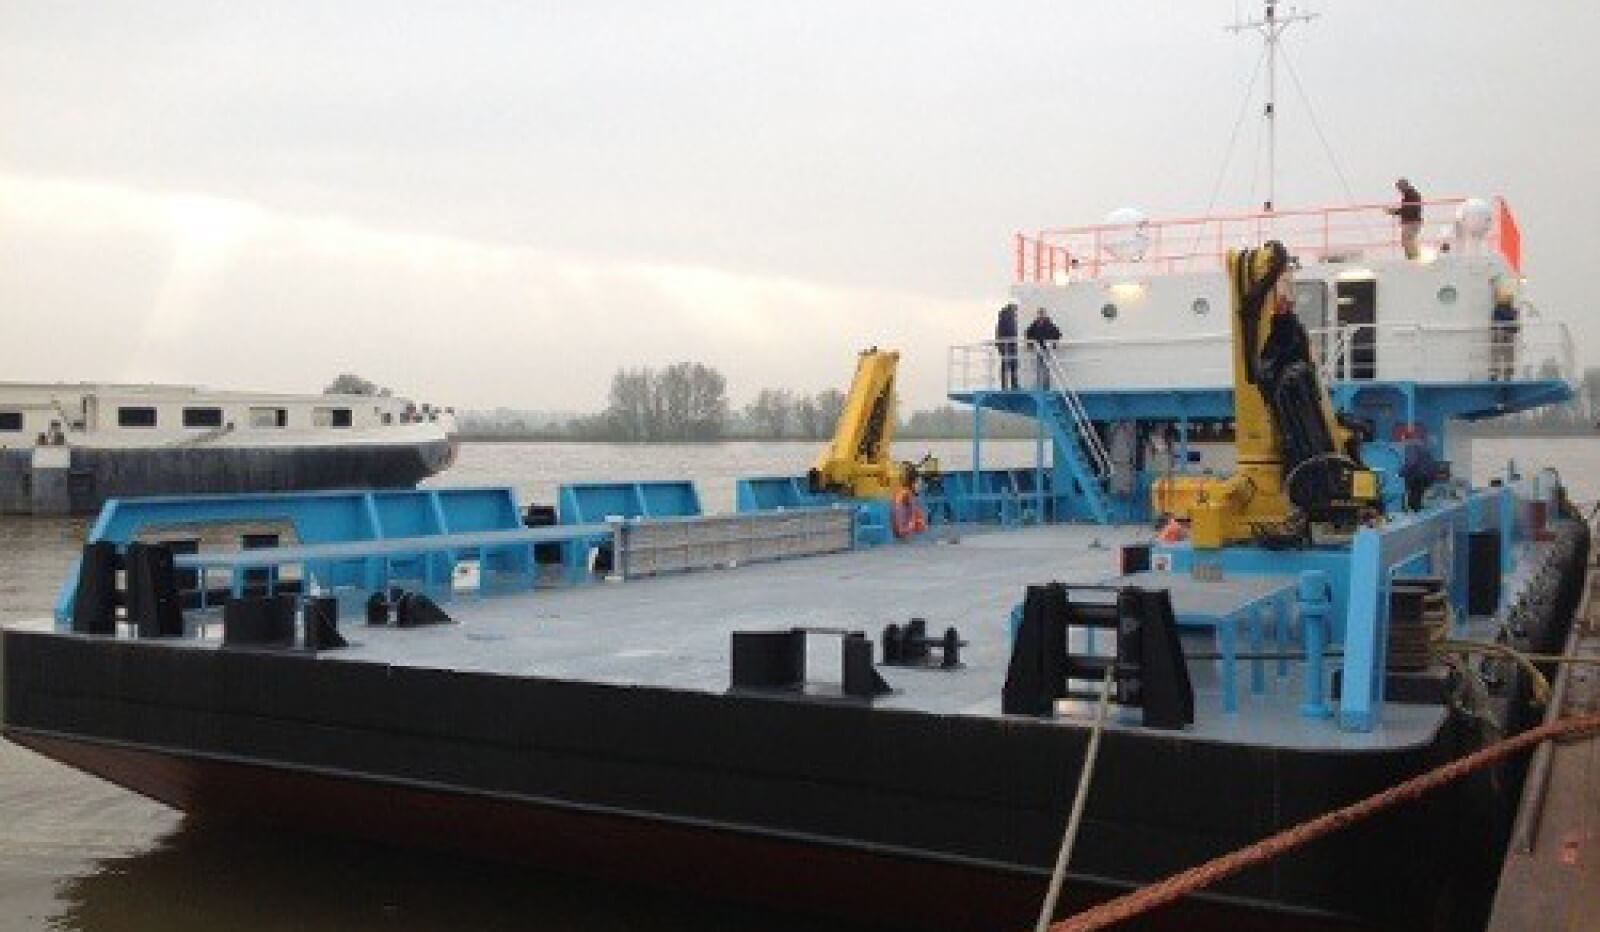 accommodation barge for sale 07600 (8)